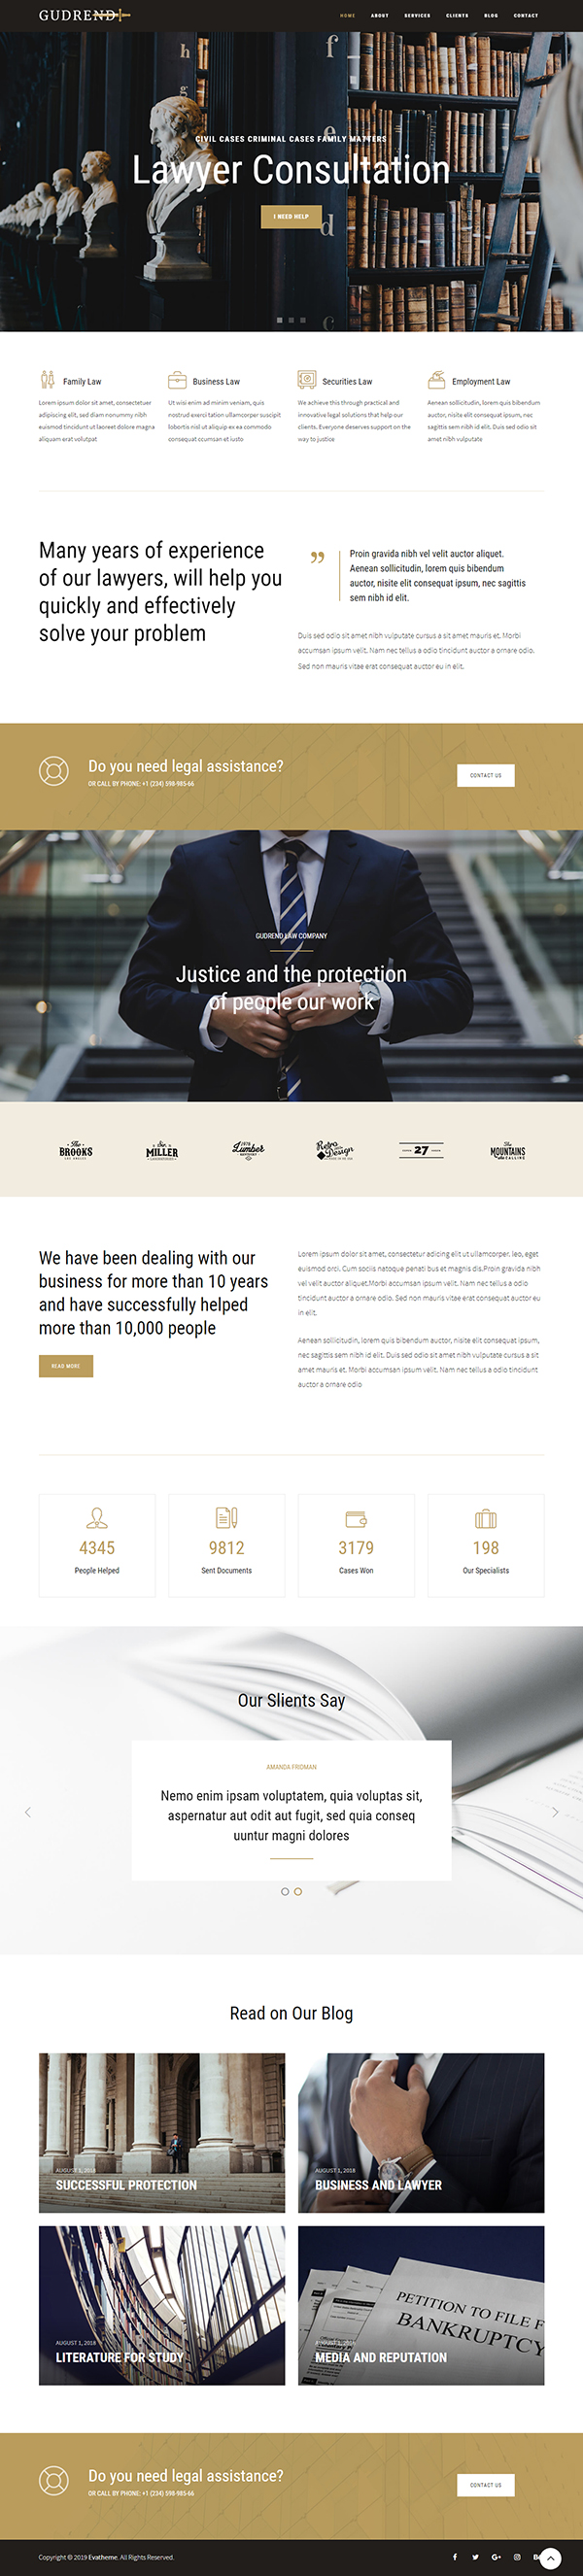 Gudrend - Lawyer Consultation WordPress Theme